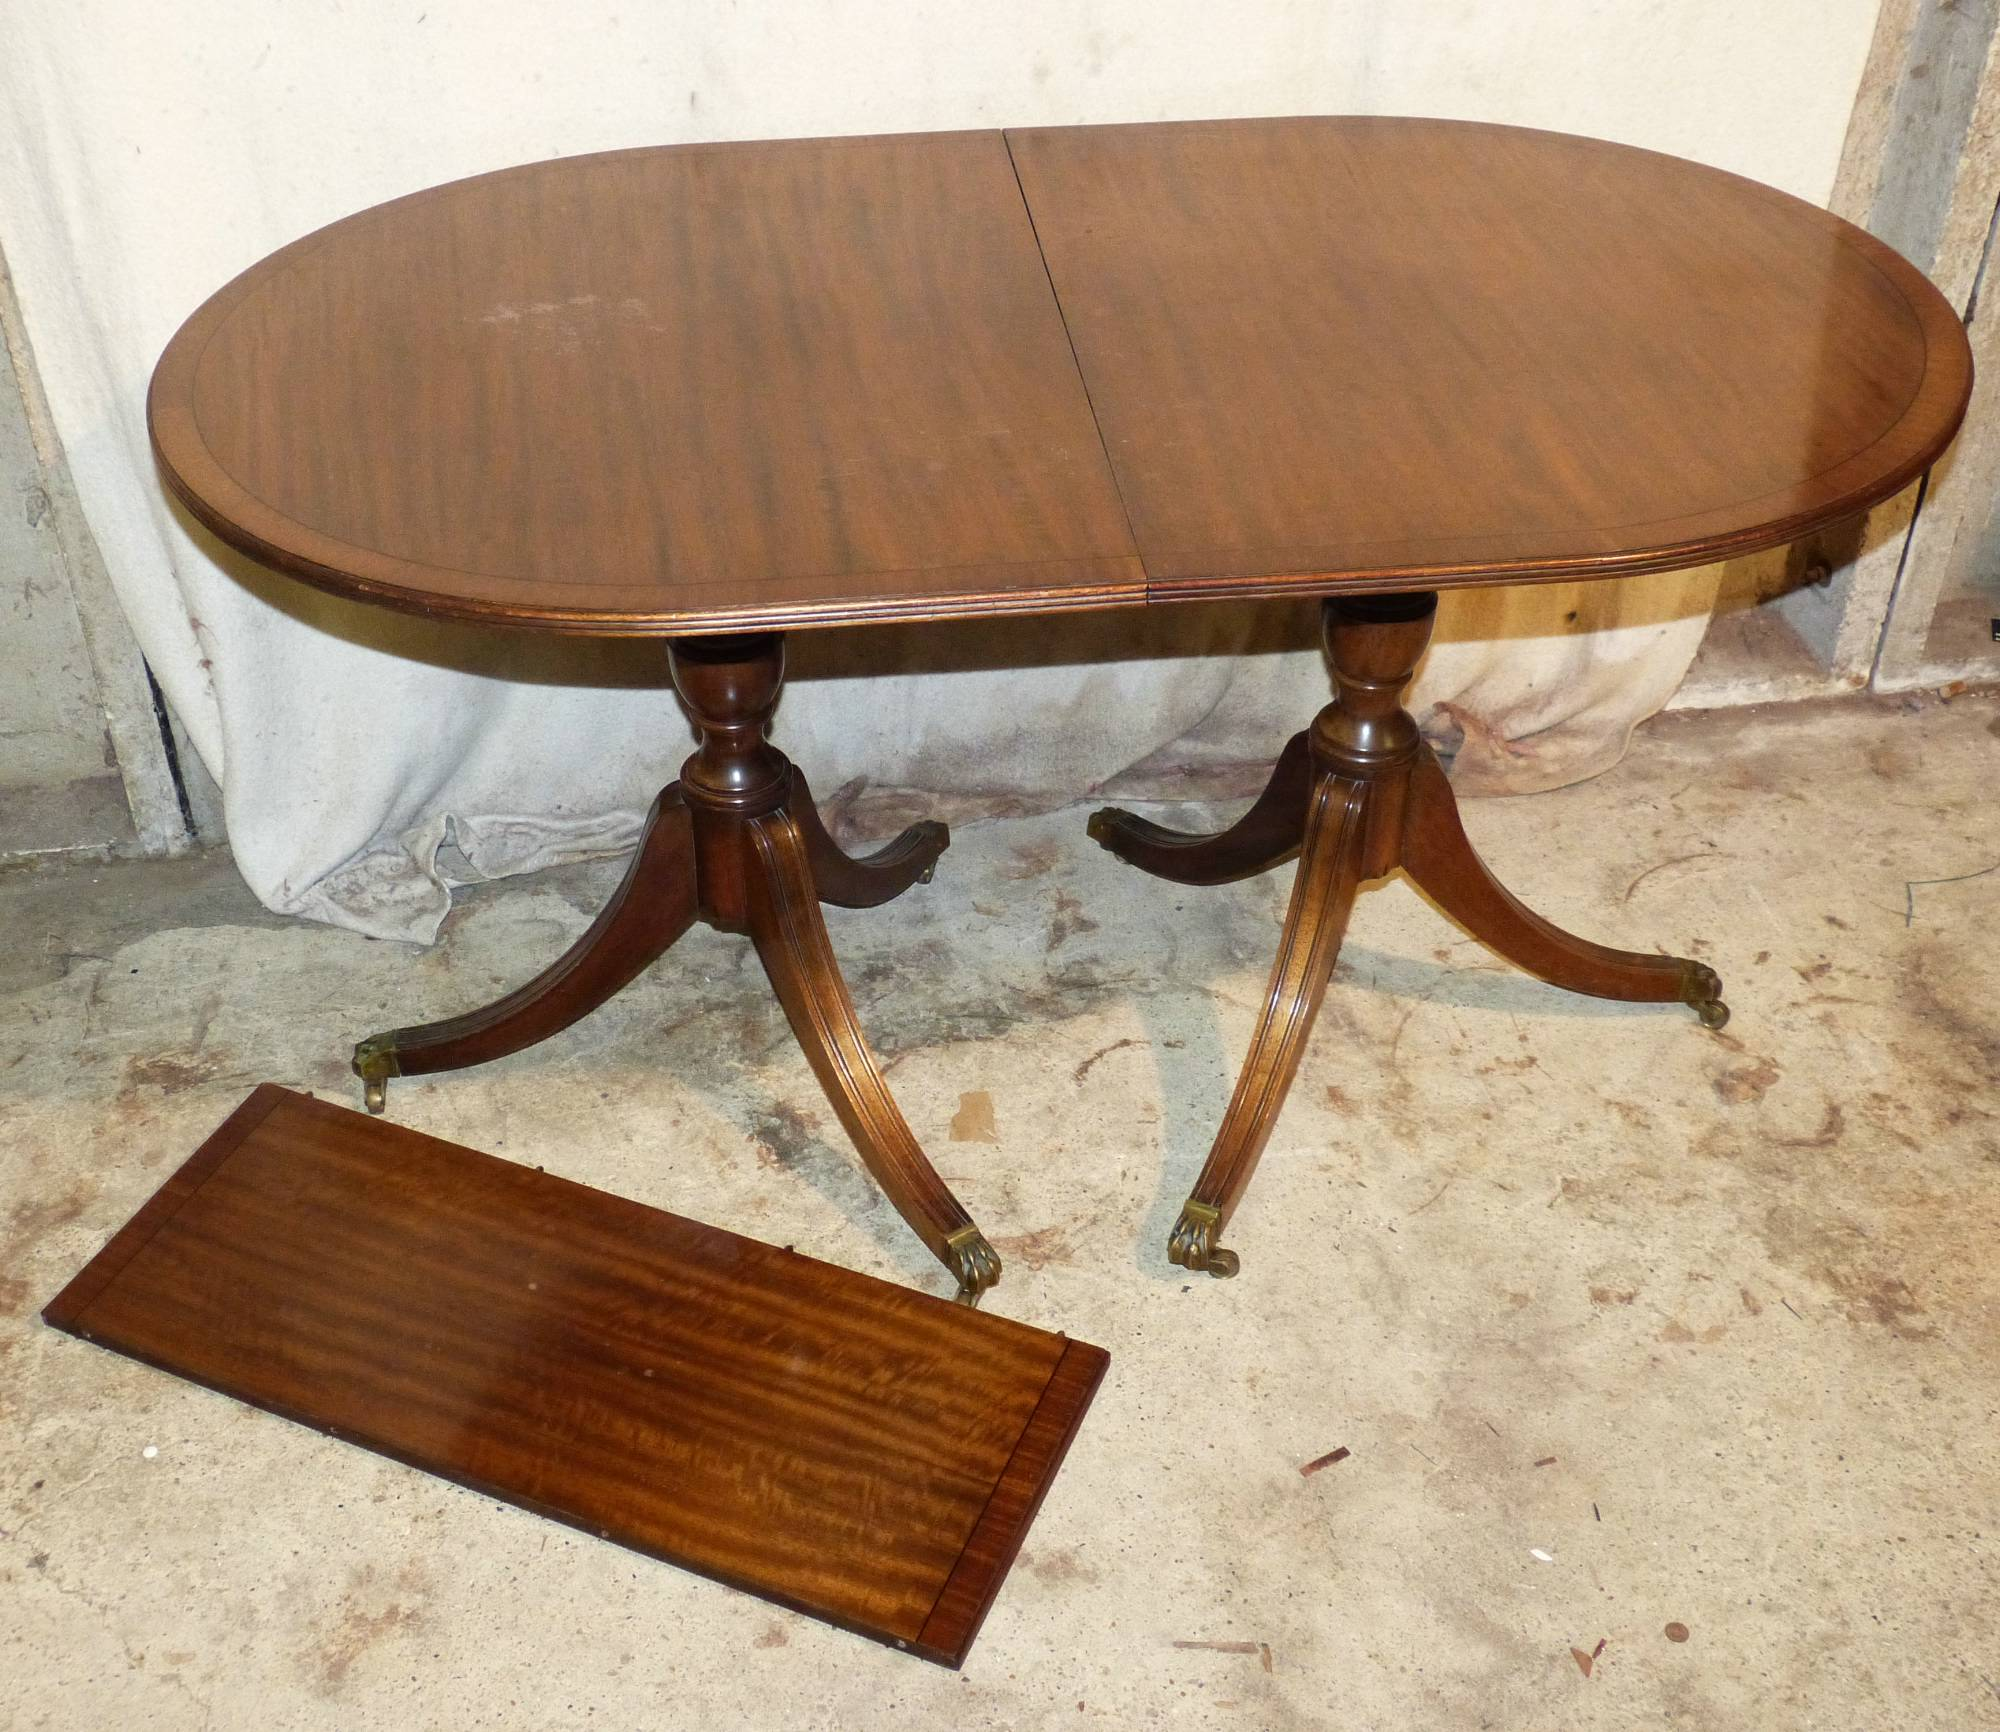 A Reproduction Mahogany D End Double Pedestal Dining Table From P F Windibank